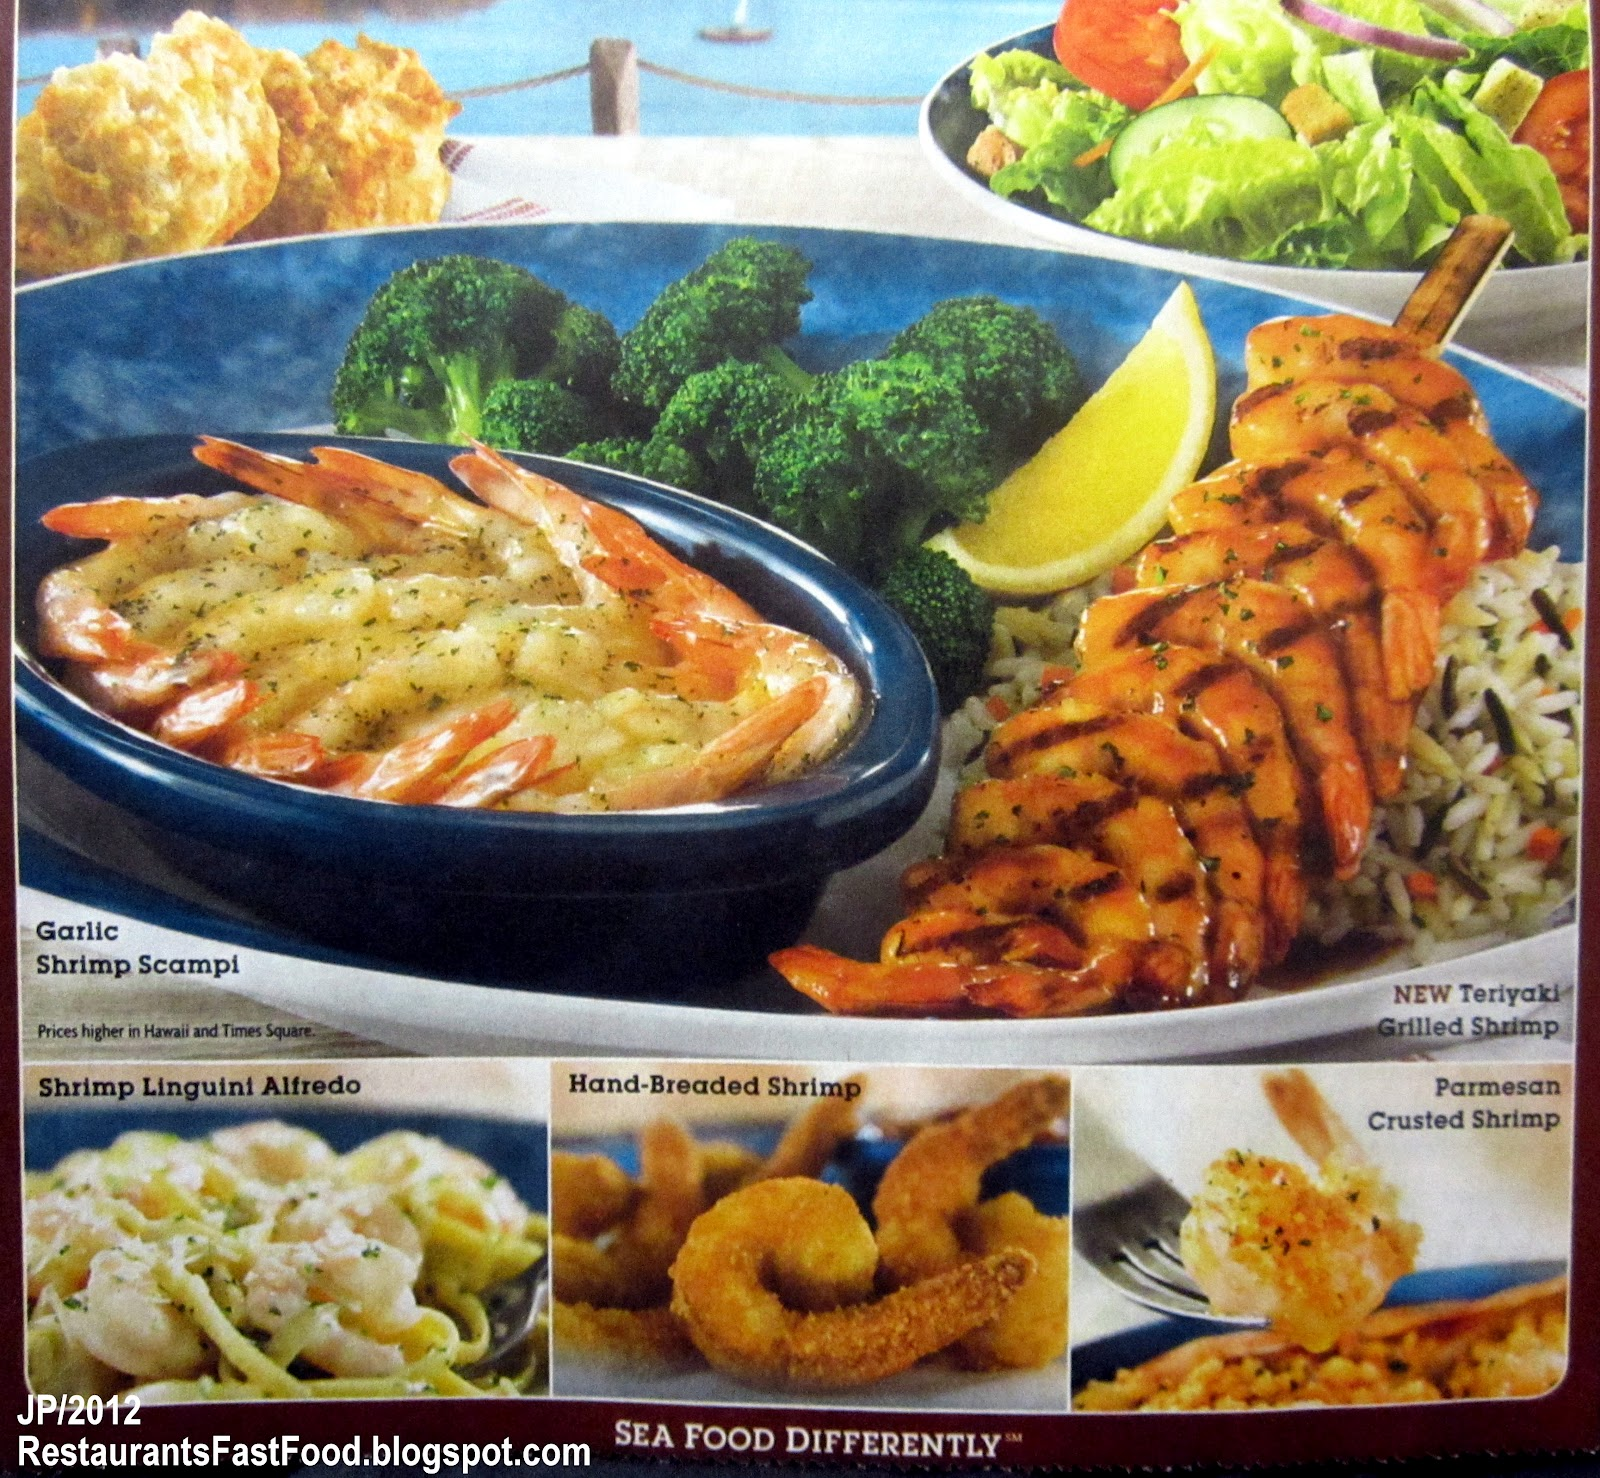 What to eat at red lobster on a diet